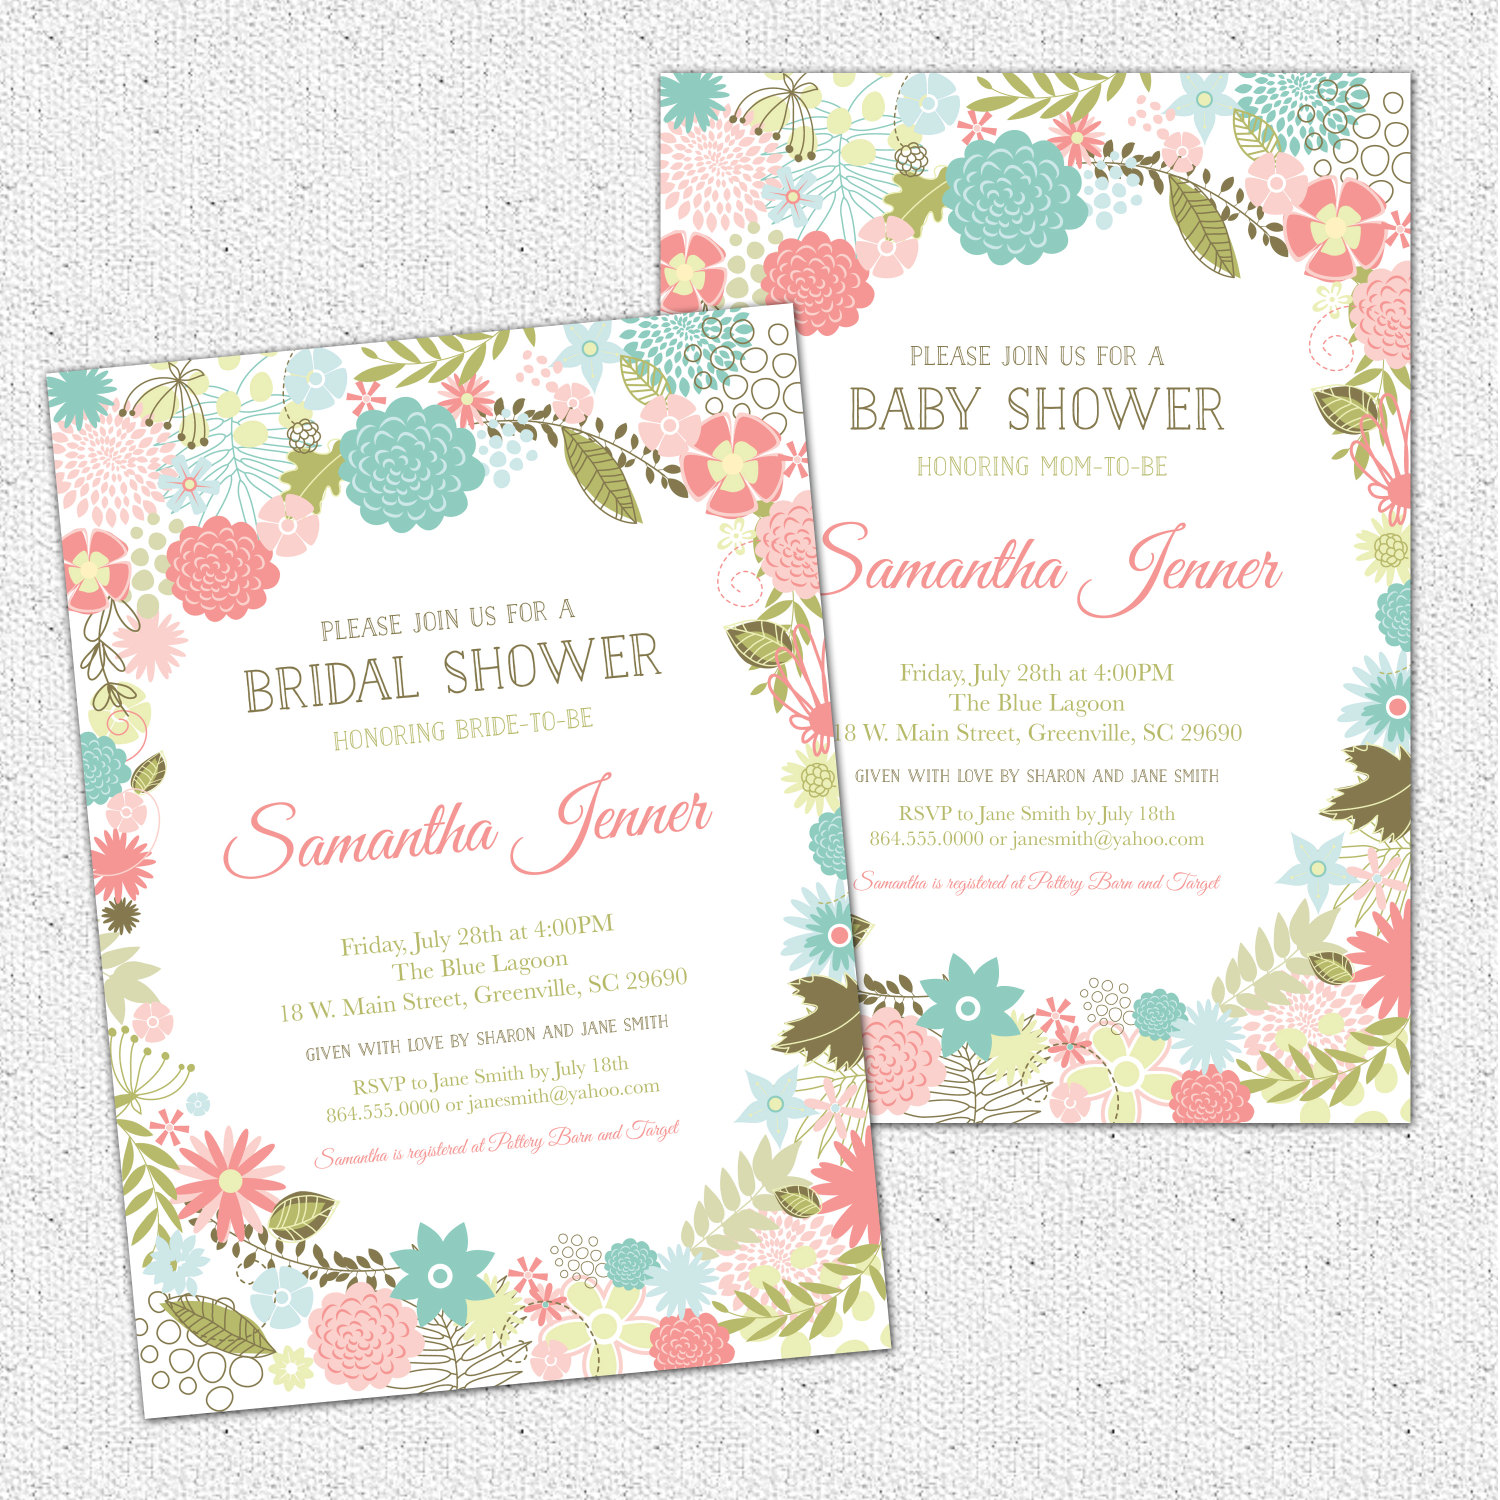 Retro Modern Flowers Bridal Baby Shower Invitations, Floral ...